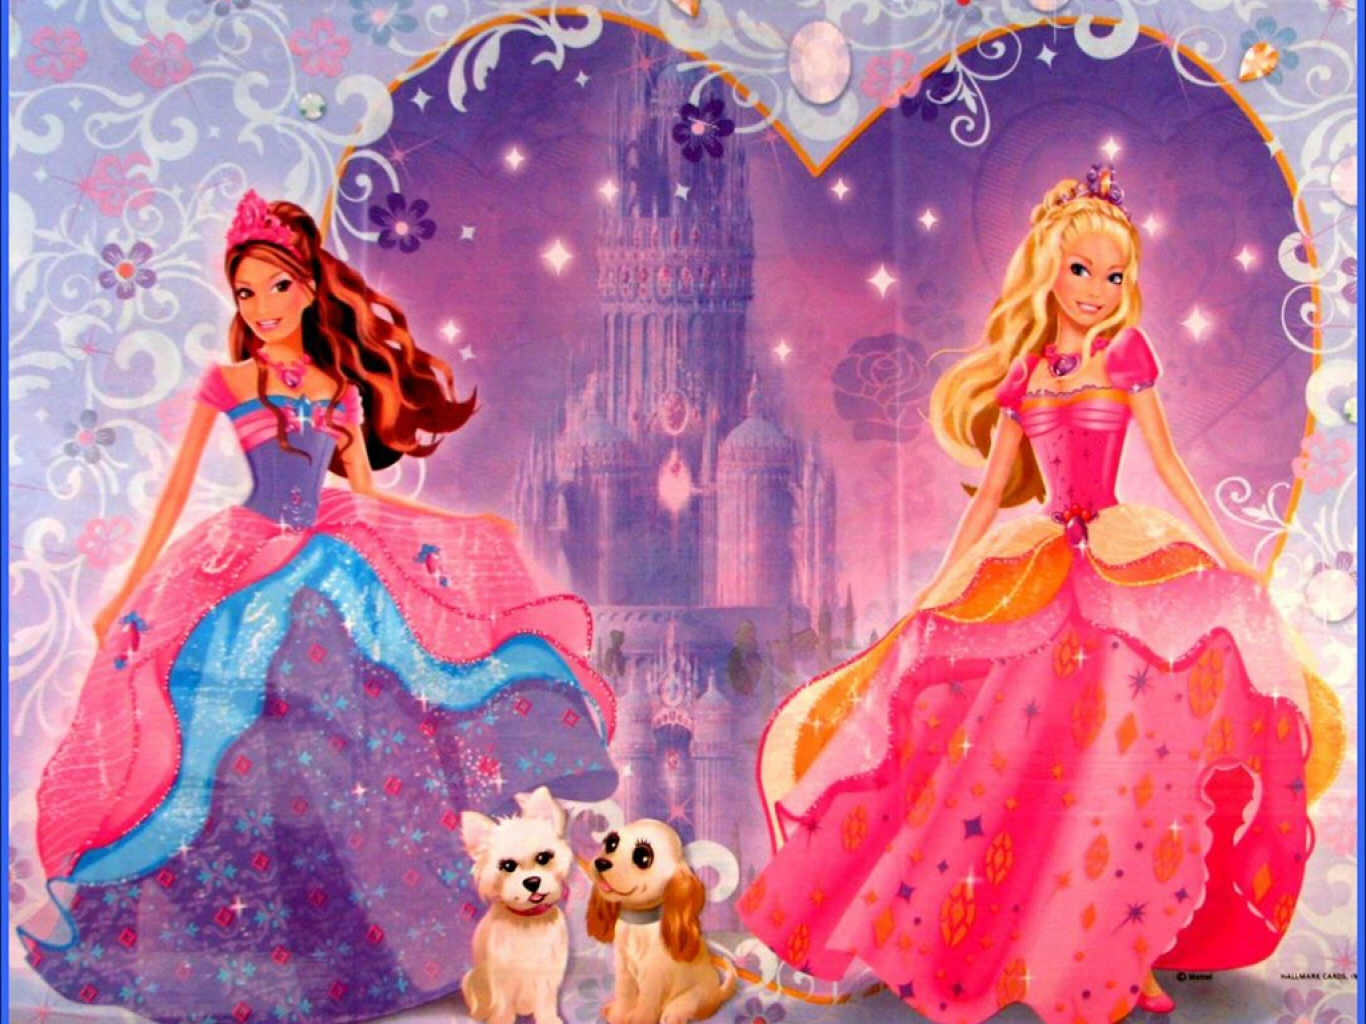 barbie wallpaper 99 barbie desktop wallpaper 1366x1024